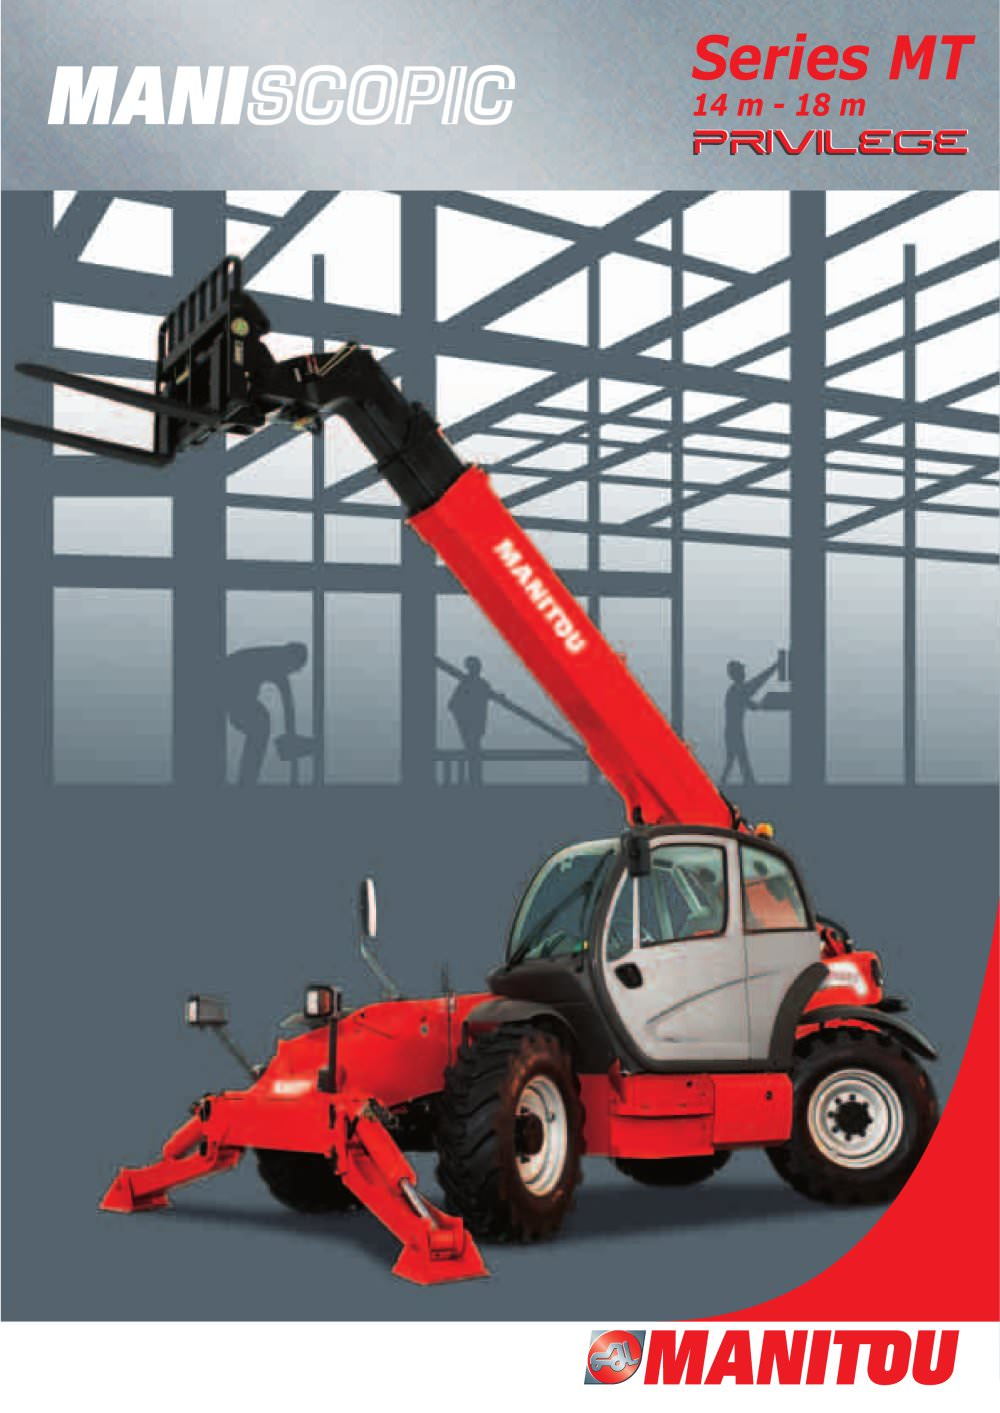 mt 1440 manitou pdf catalogue technical documentation brochure rh pdf directindustry com manitou mt 1440 sl manual manitou mt 1440 manual